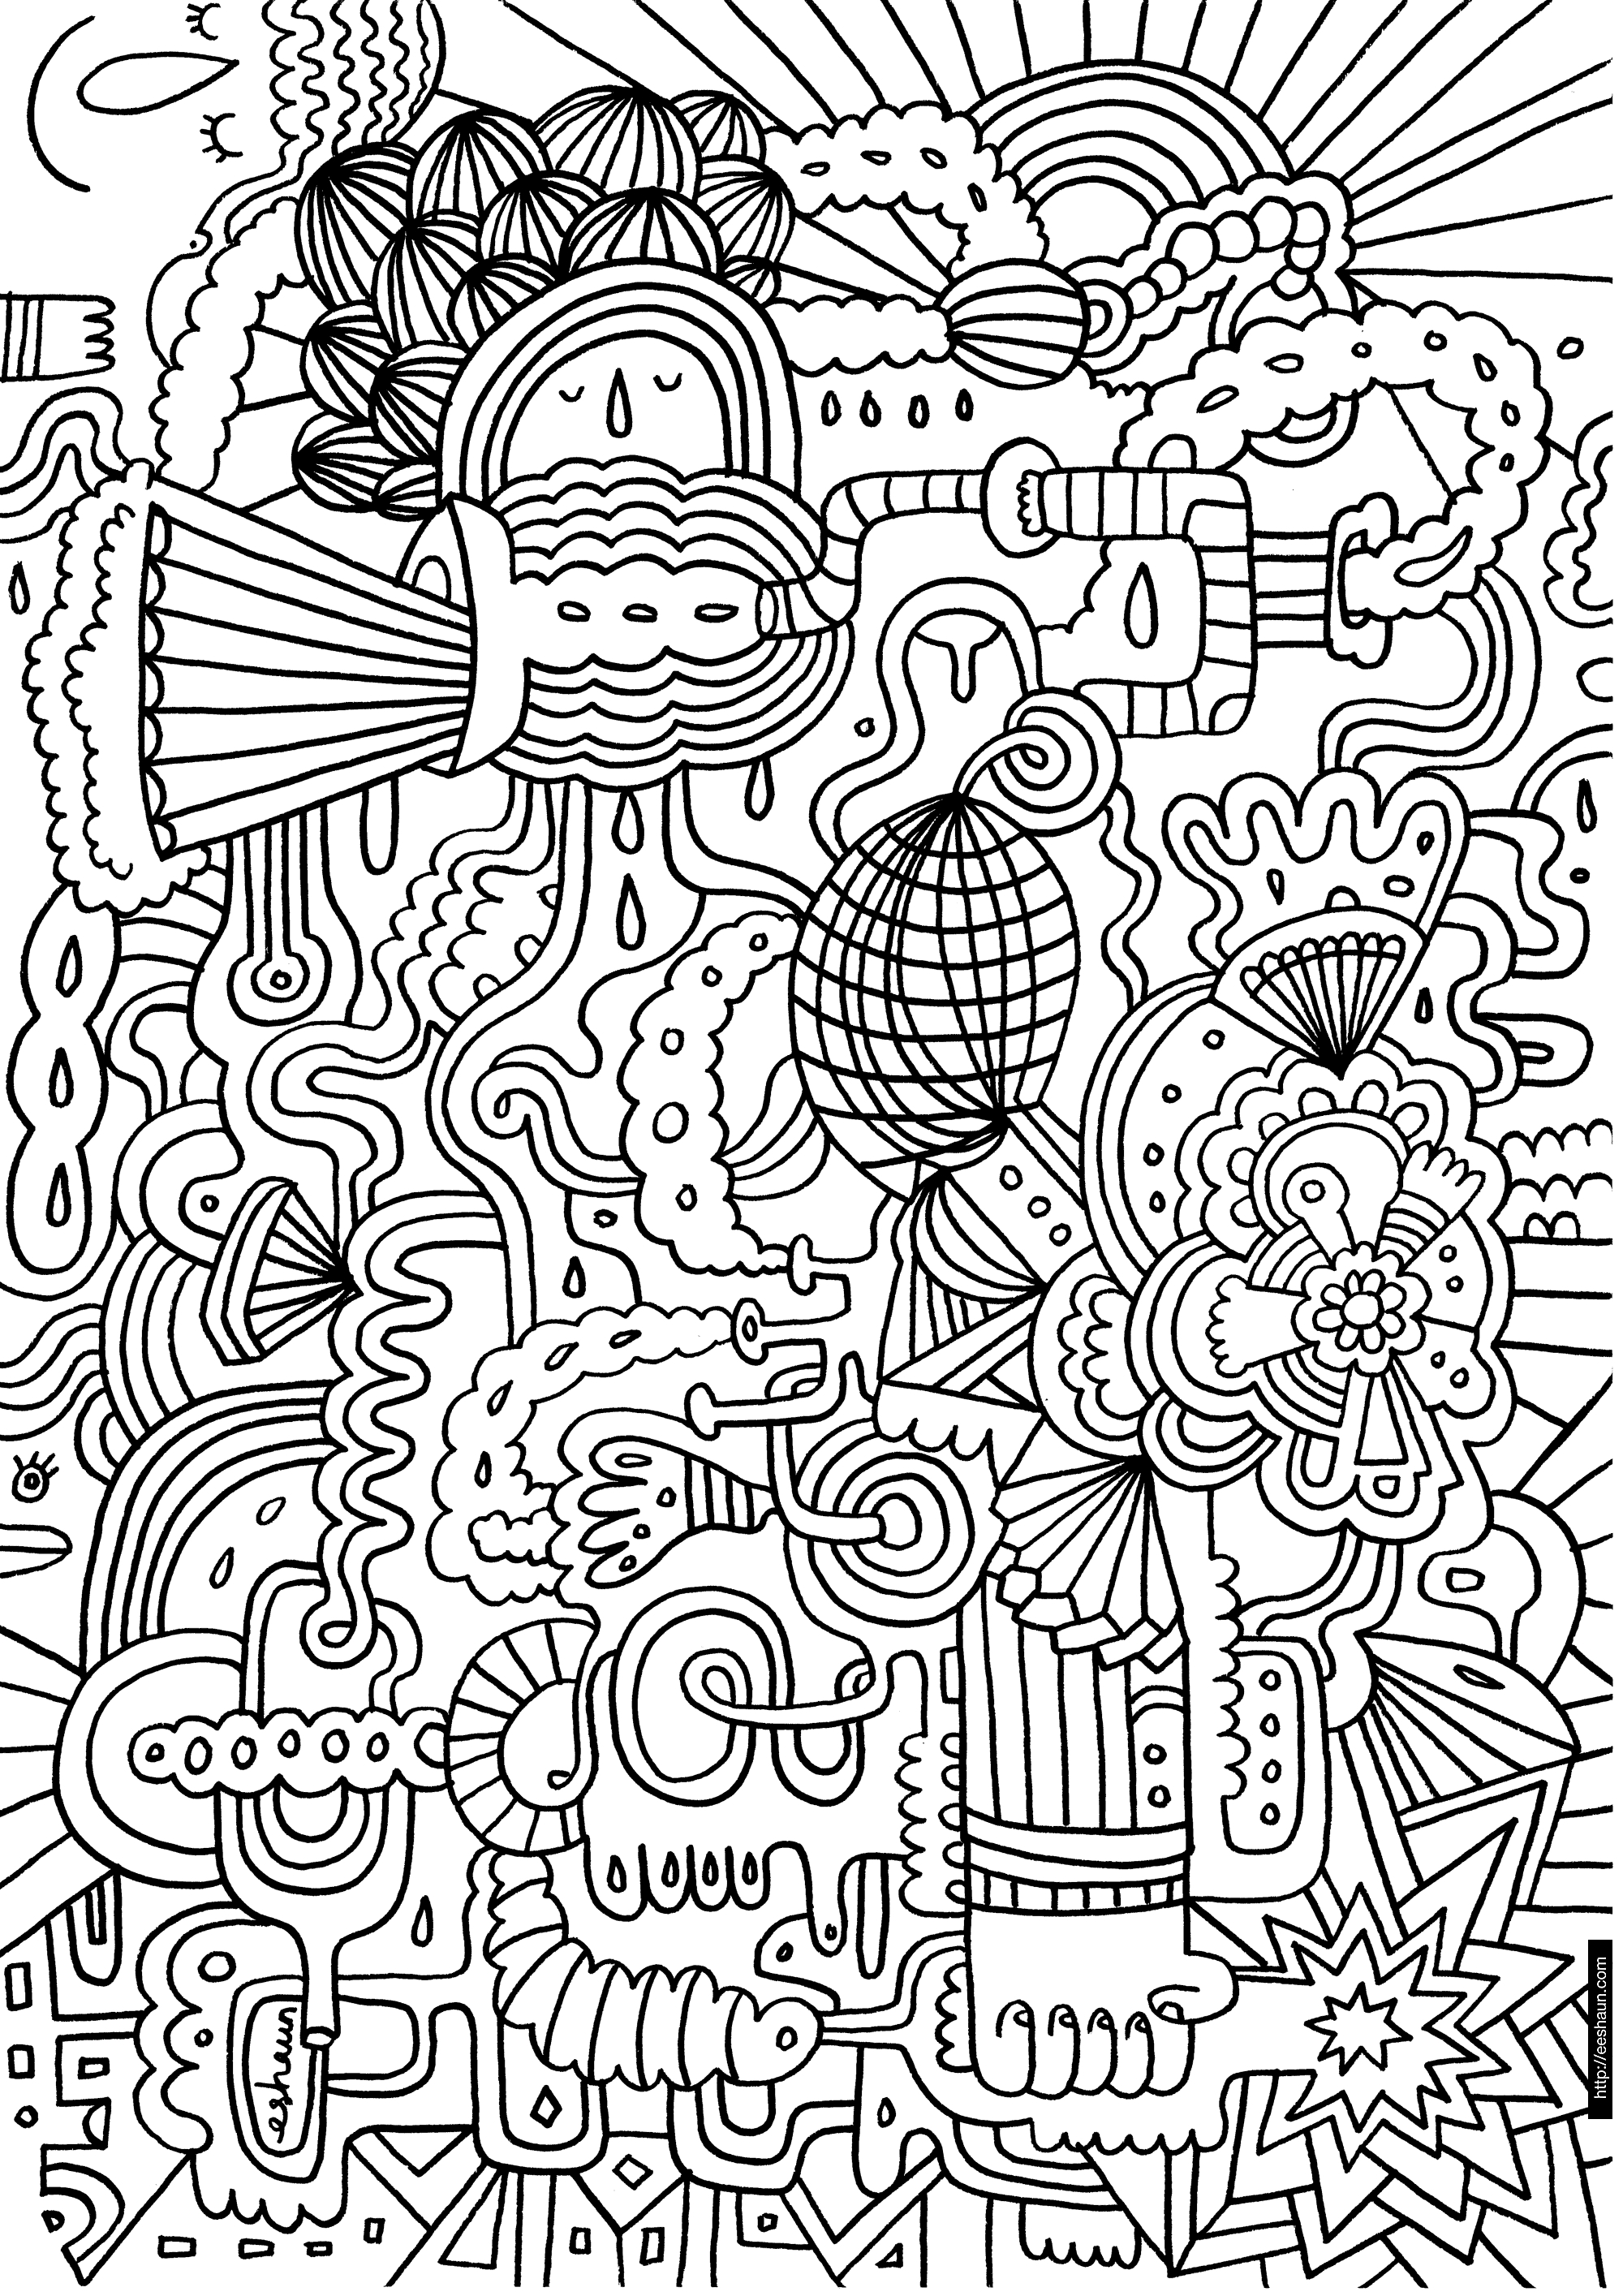 Hard Coloring Pages - Free Large Images | Adult Coloring Pages - Free Printable Hard Coloring Pages For Adults